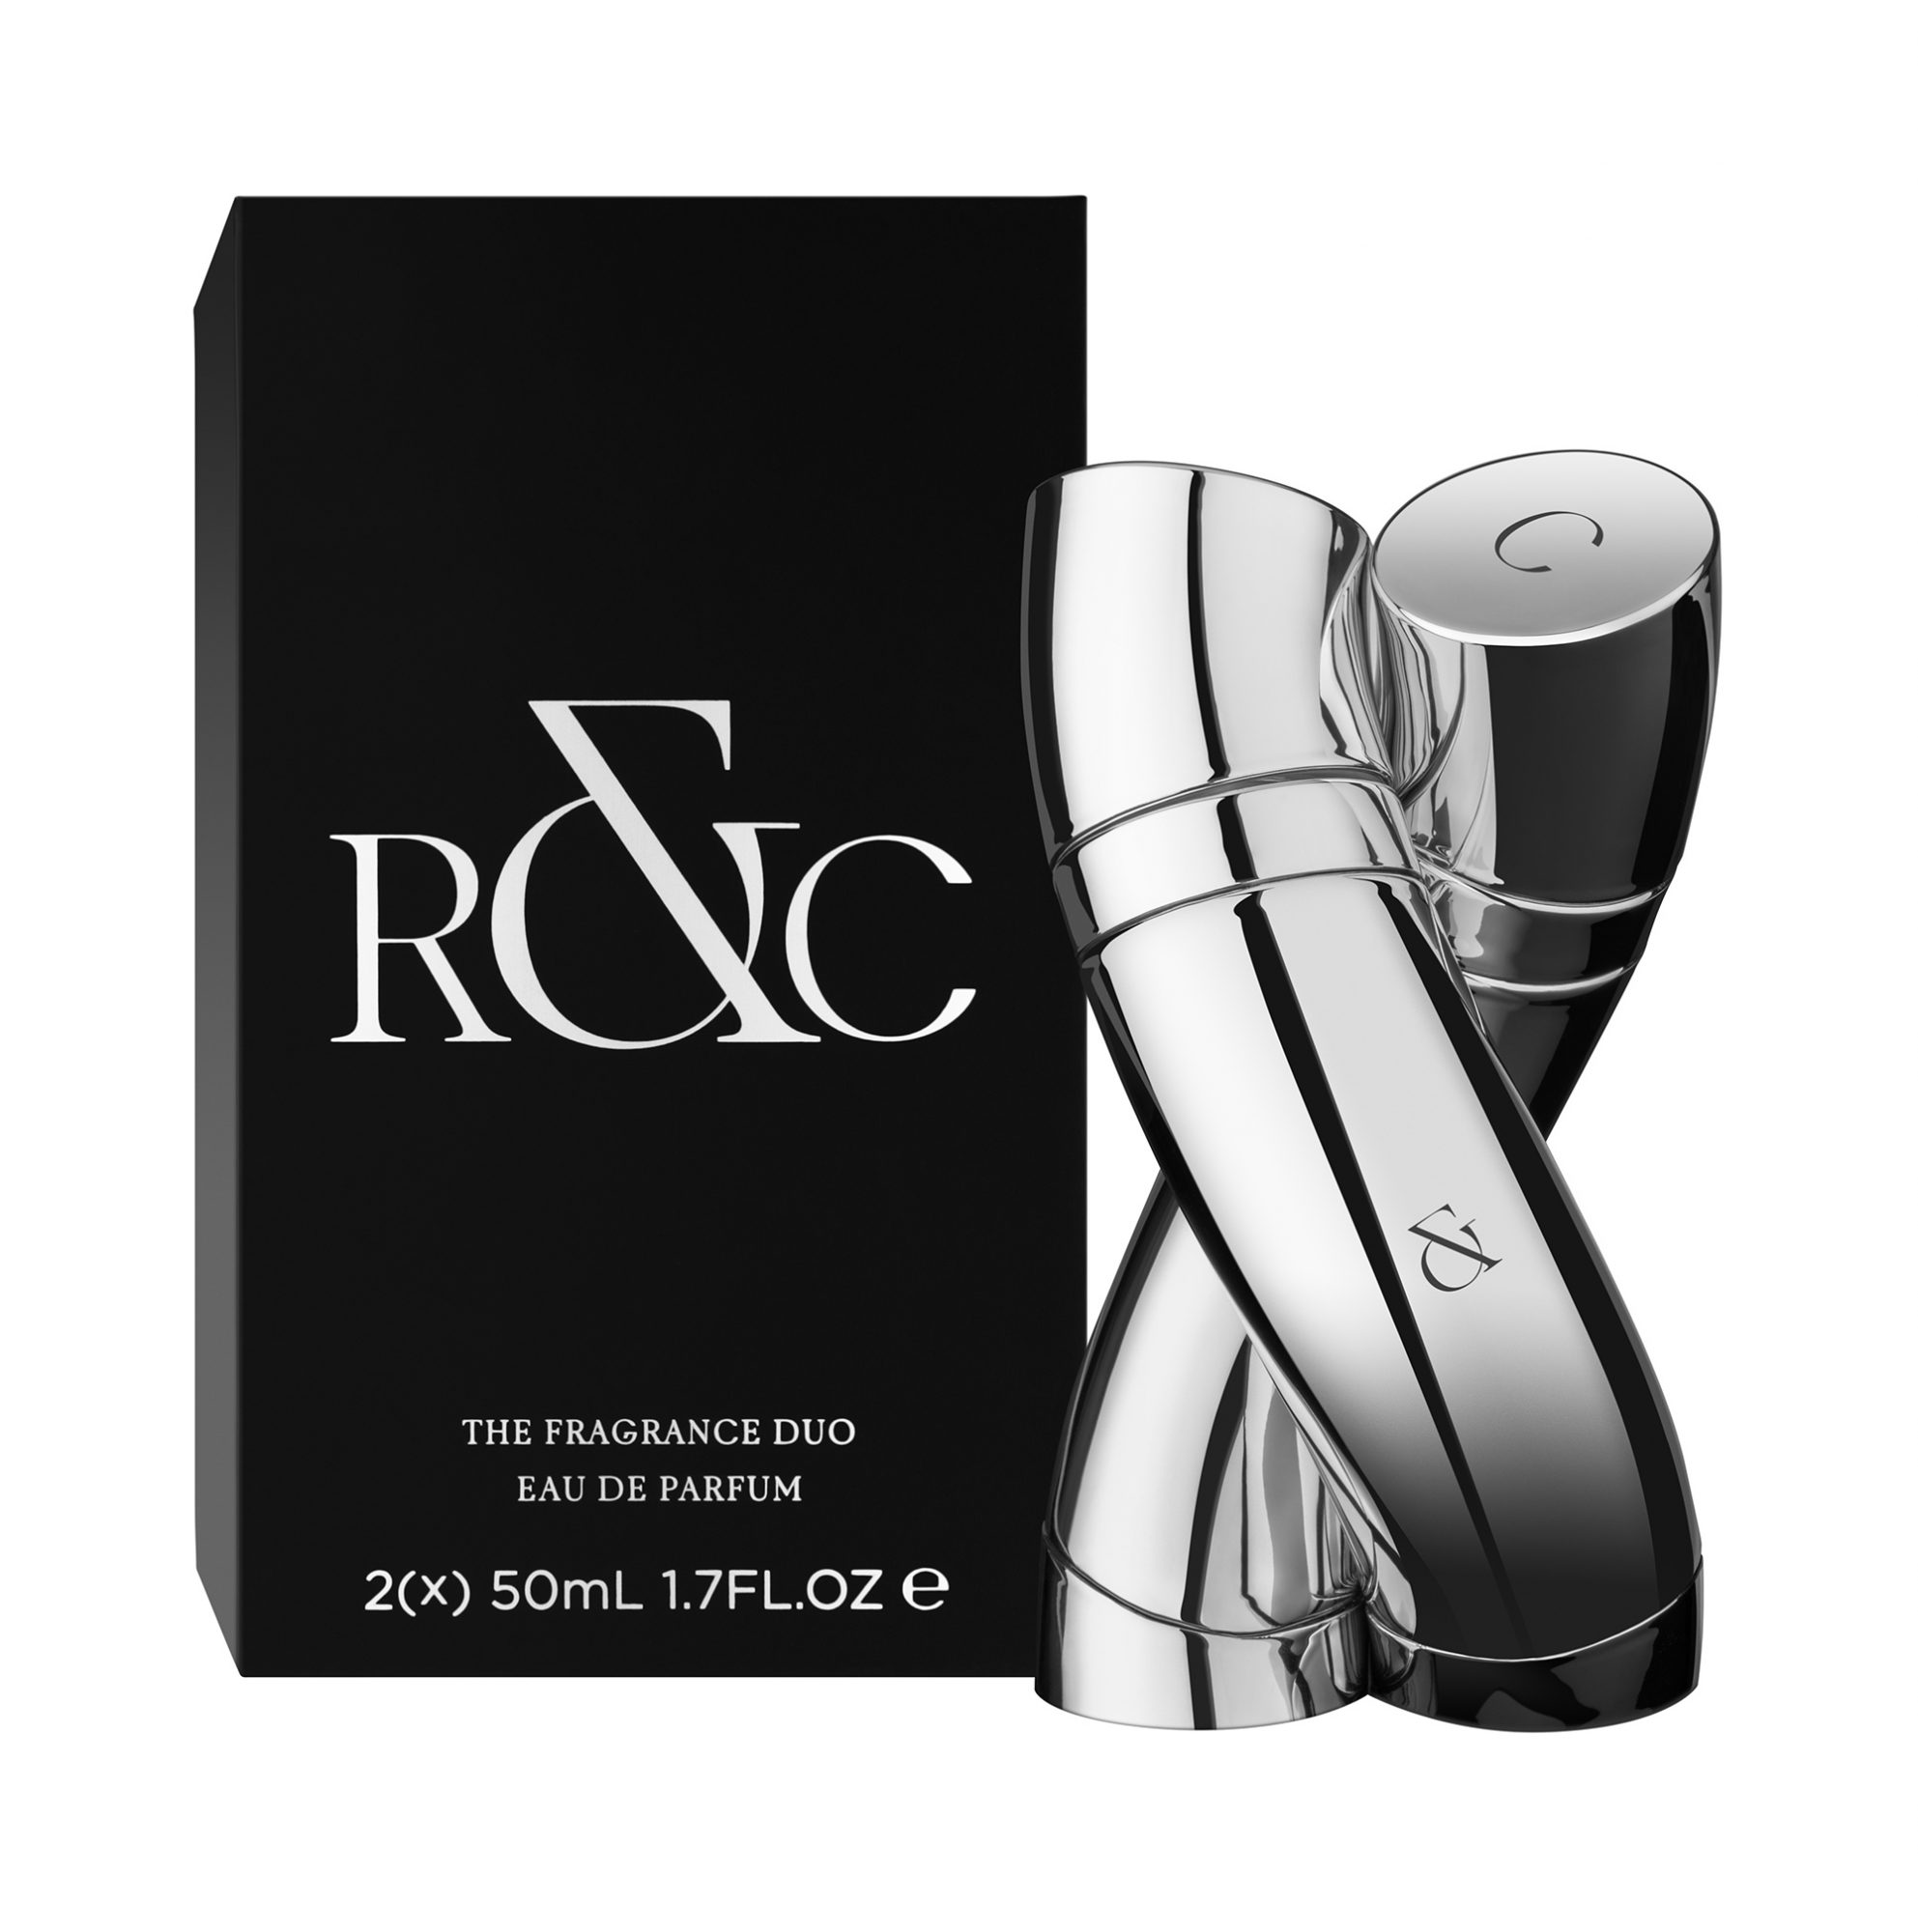 Ciara and Russell Wilson Launch R+C Fragrance Duo Inspired by Their Love